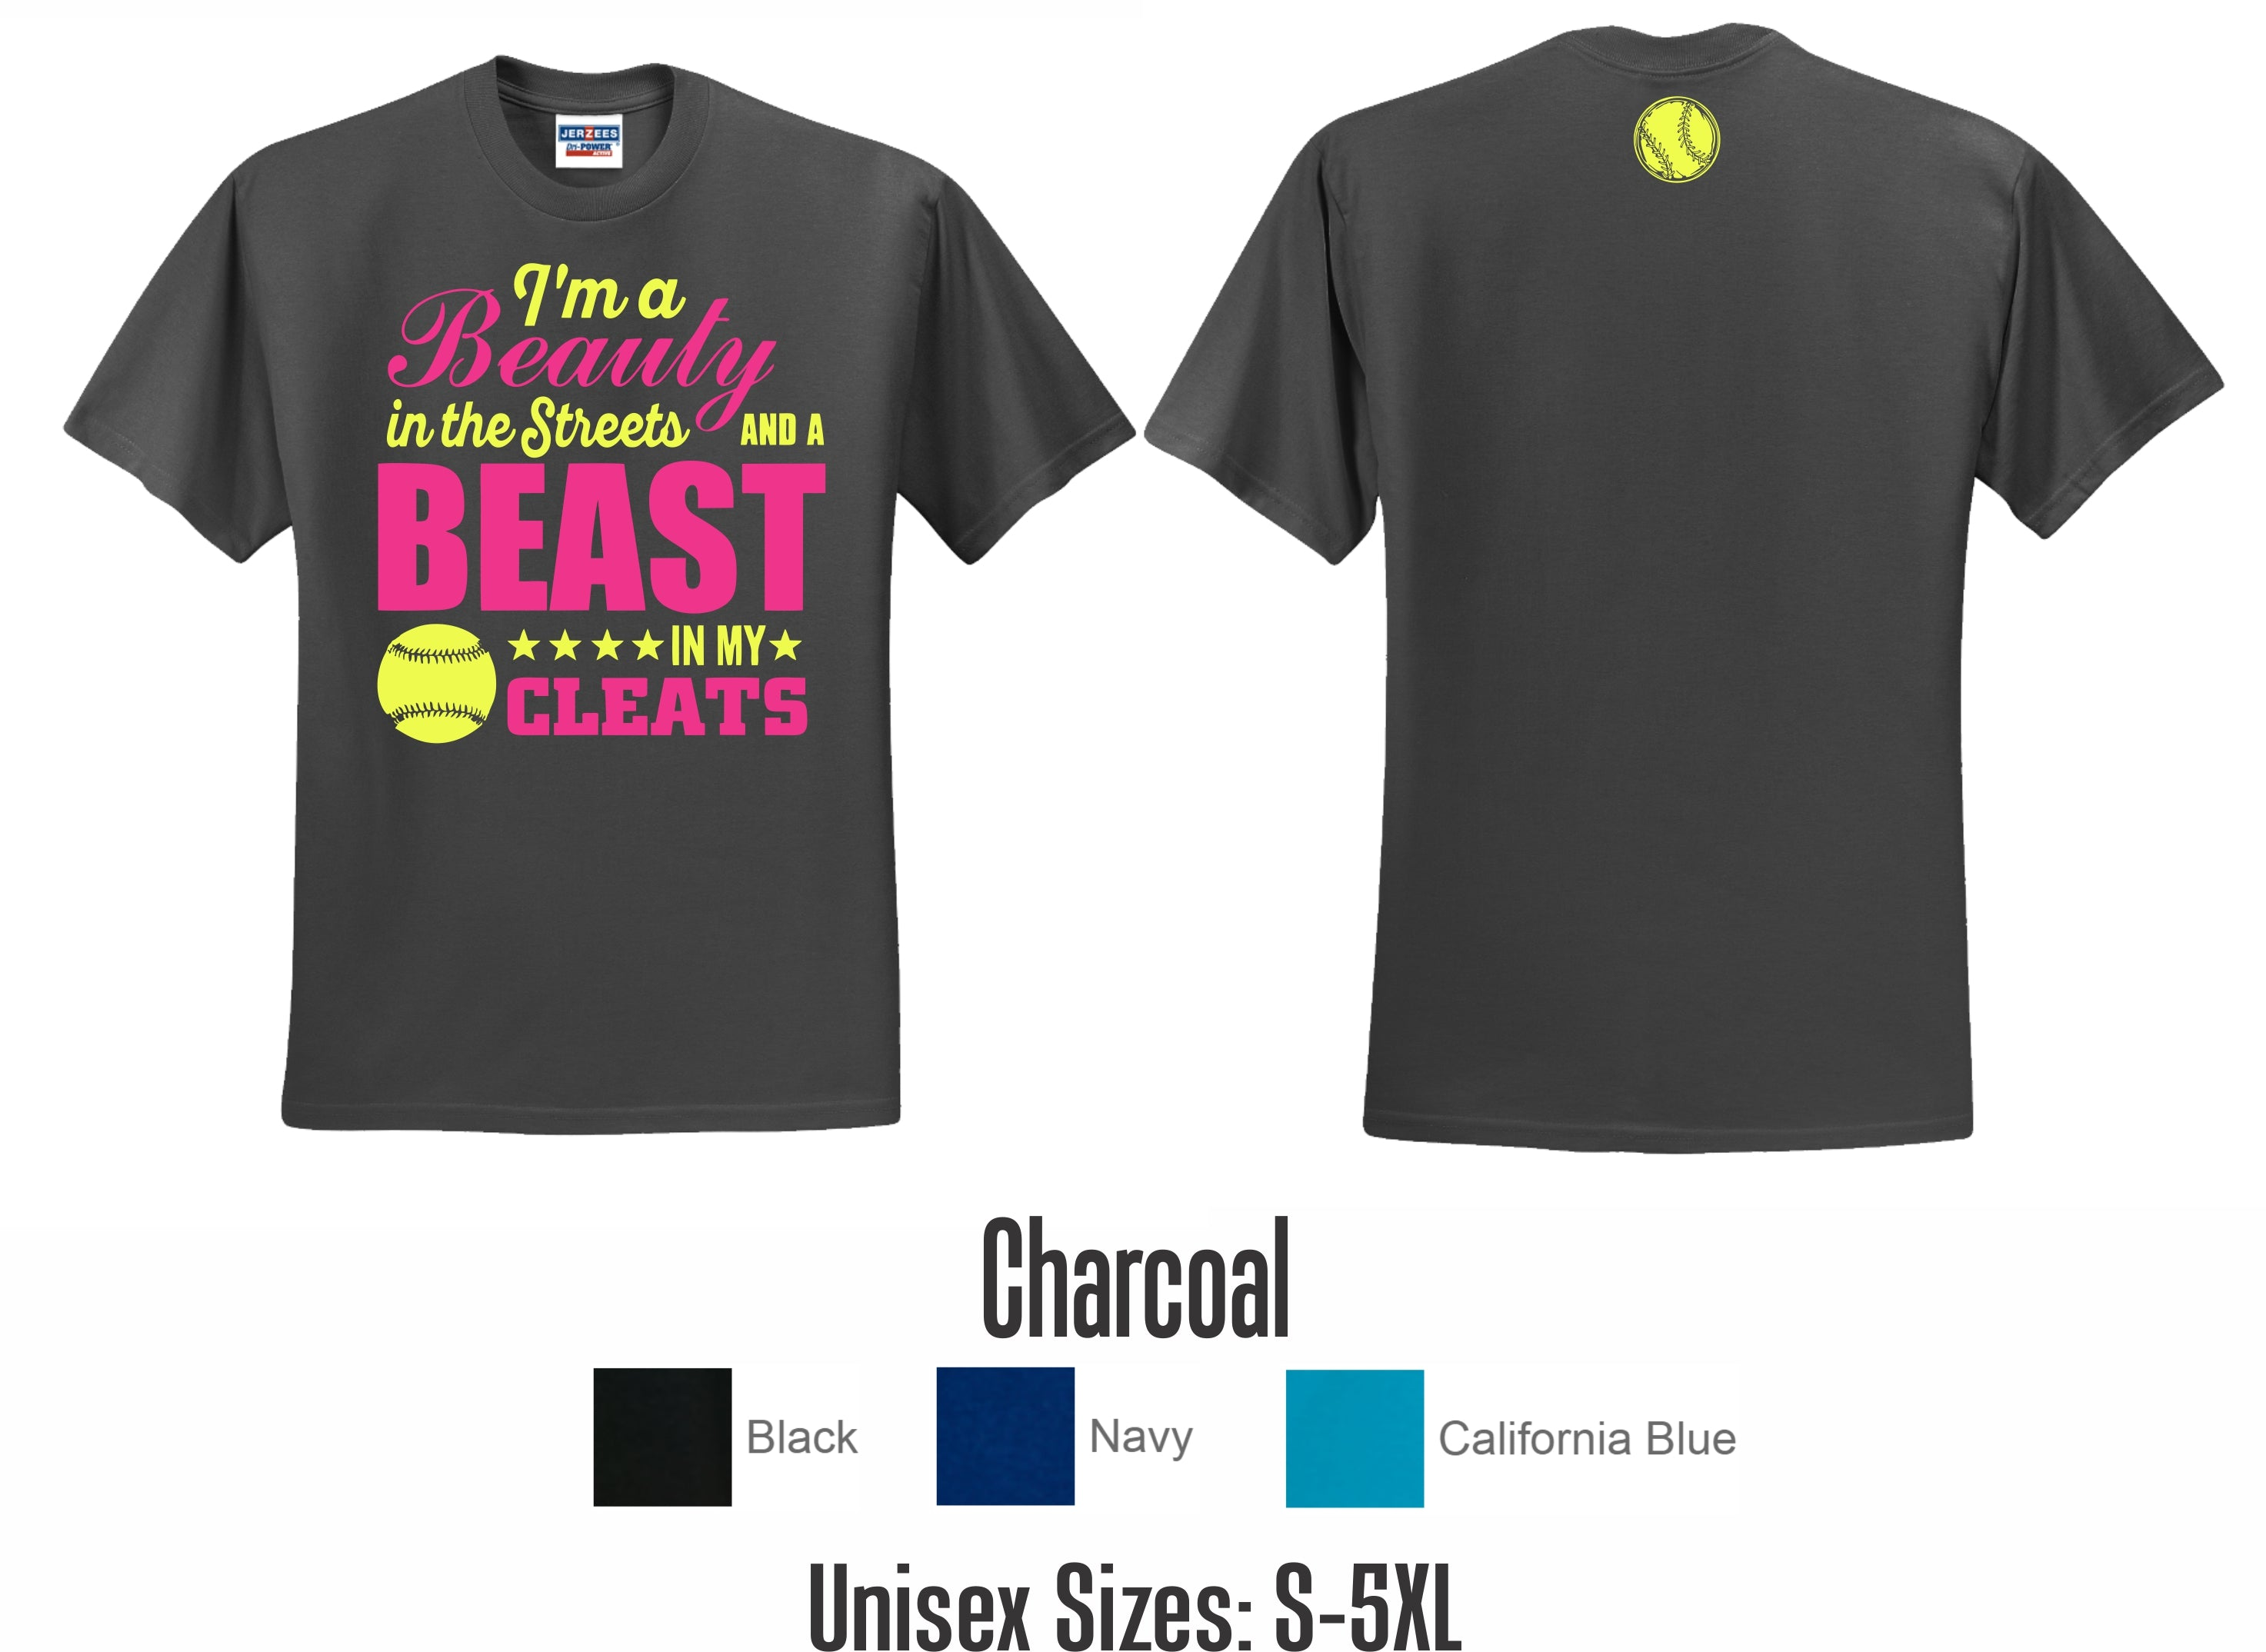 Im A Beauty in The Streets and A Beast in My Cleats Baseball Unisex Sweatshirt tee